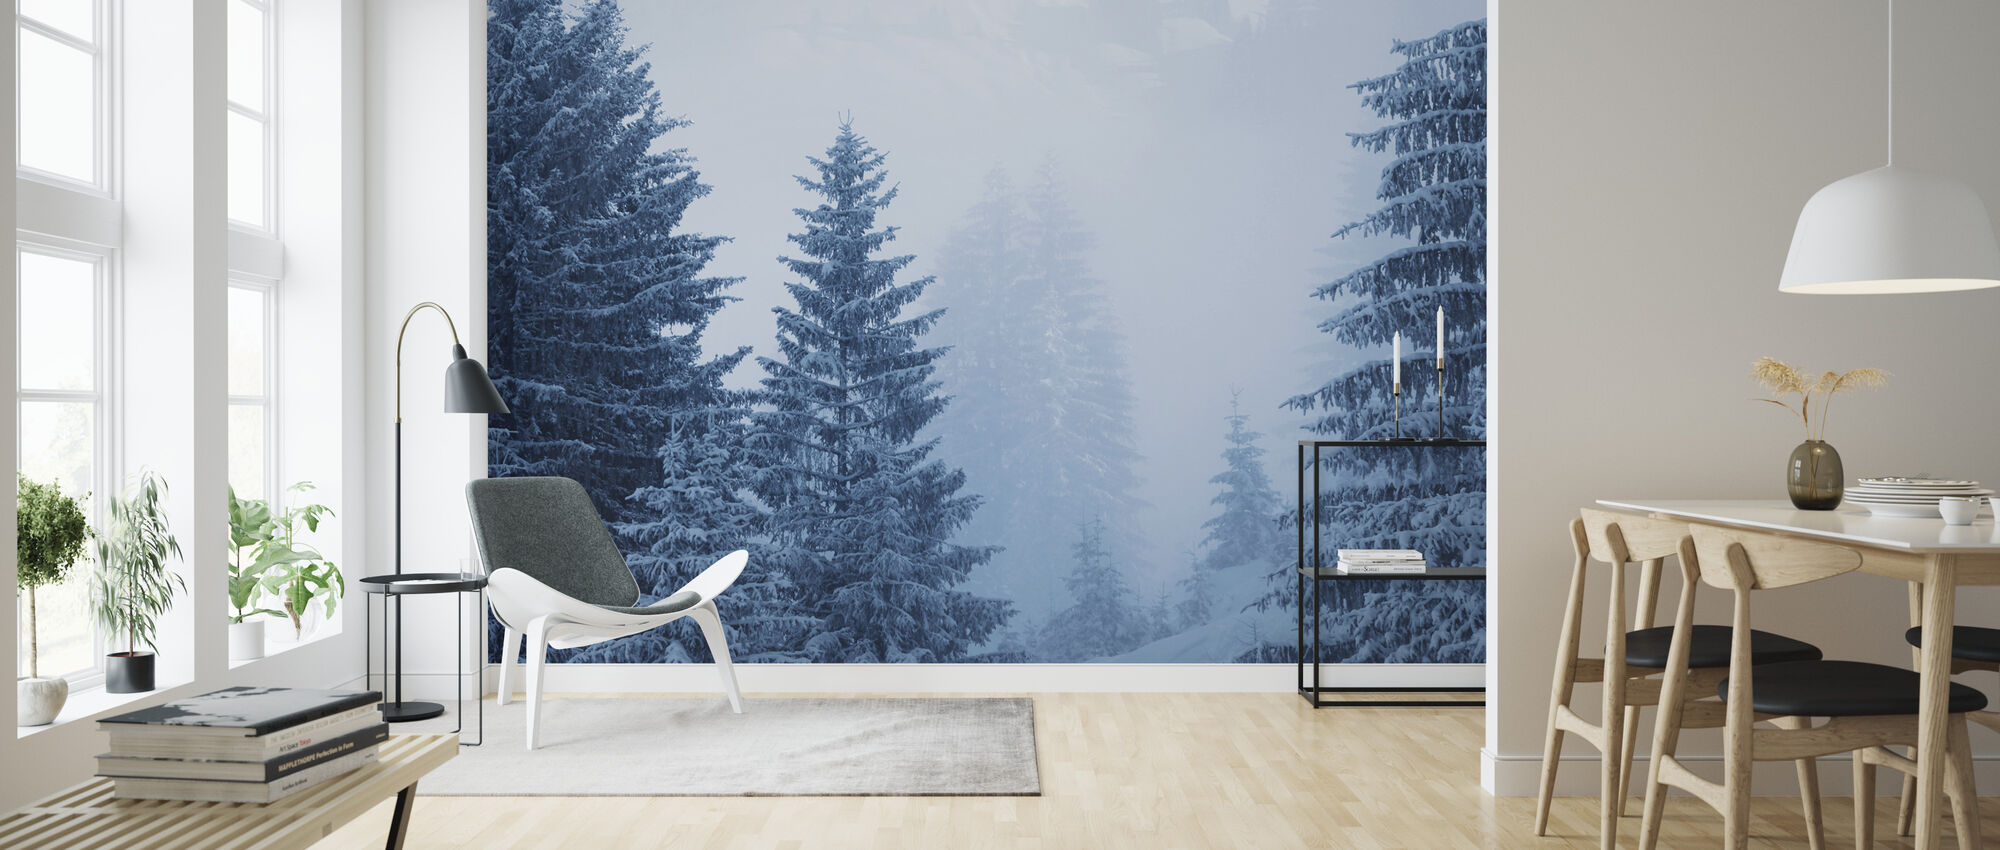 Coniferous Forest in Austria, Europe - Wallpaper - Living Room